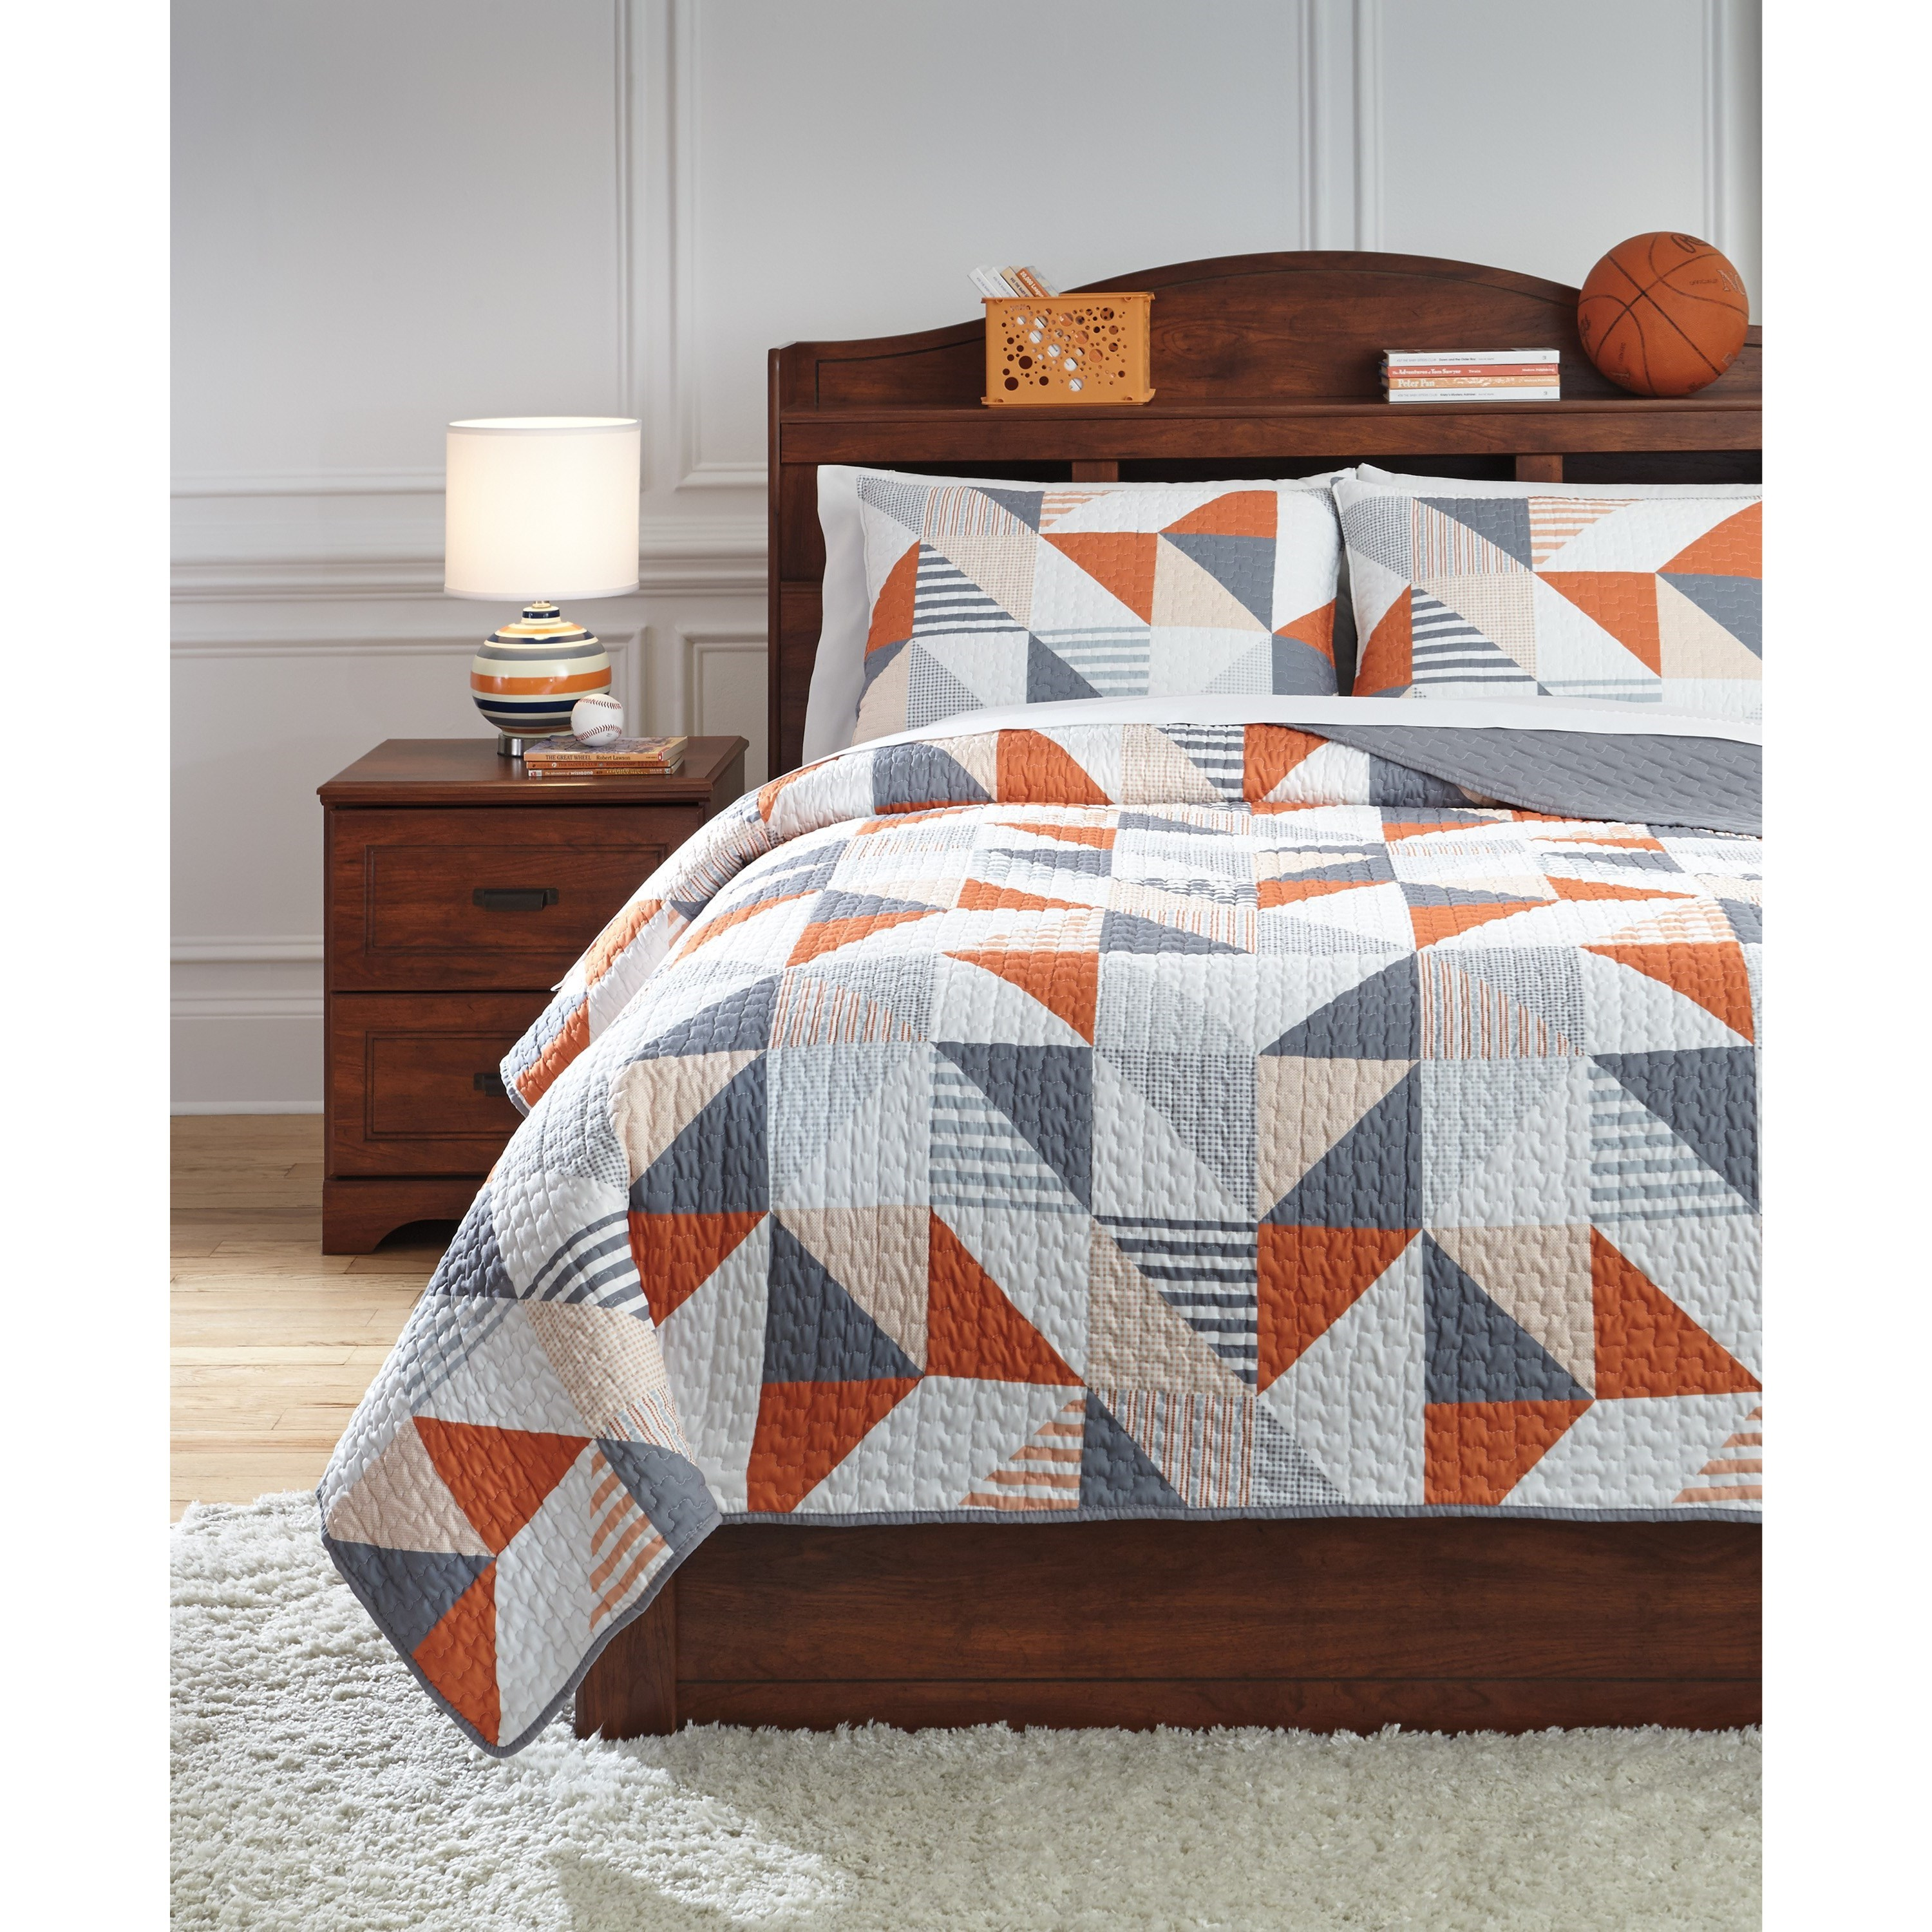 Bedding Sets Full Layne Gray/Orange Coverlet Set by Signature Design by Ashley at Northeast Factory Direct